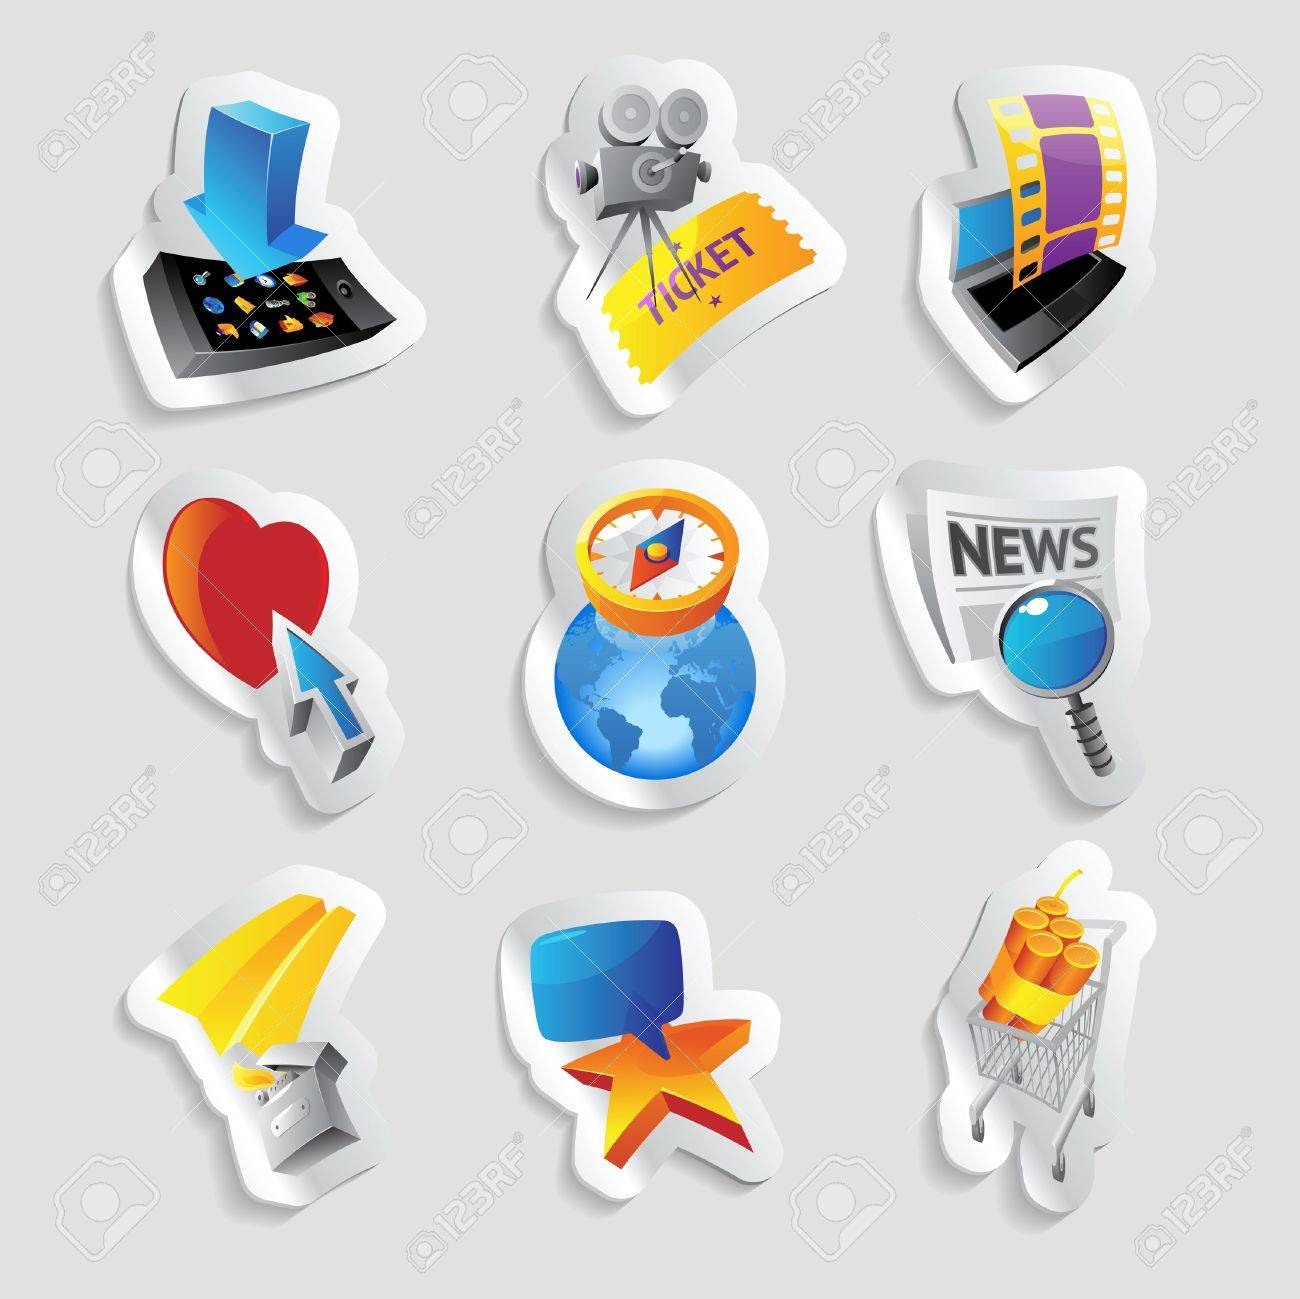 Icons for media and entertainment illustration Stock Vector - 20334886